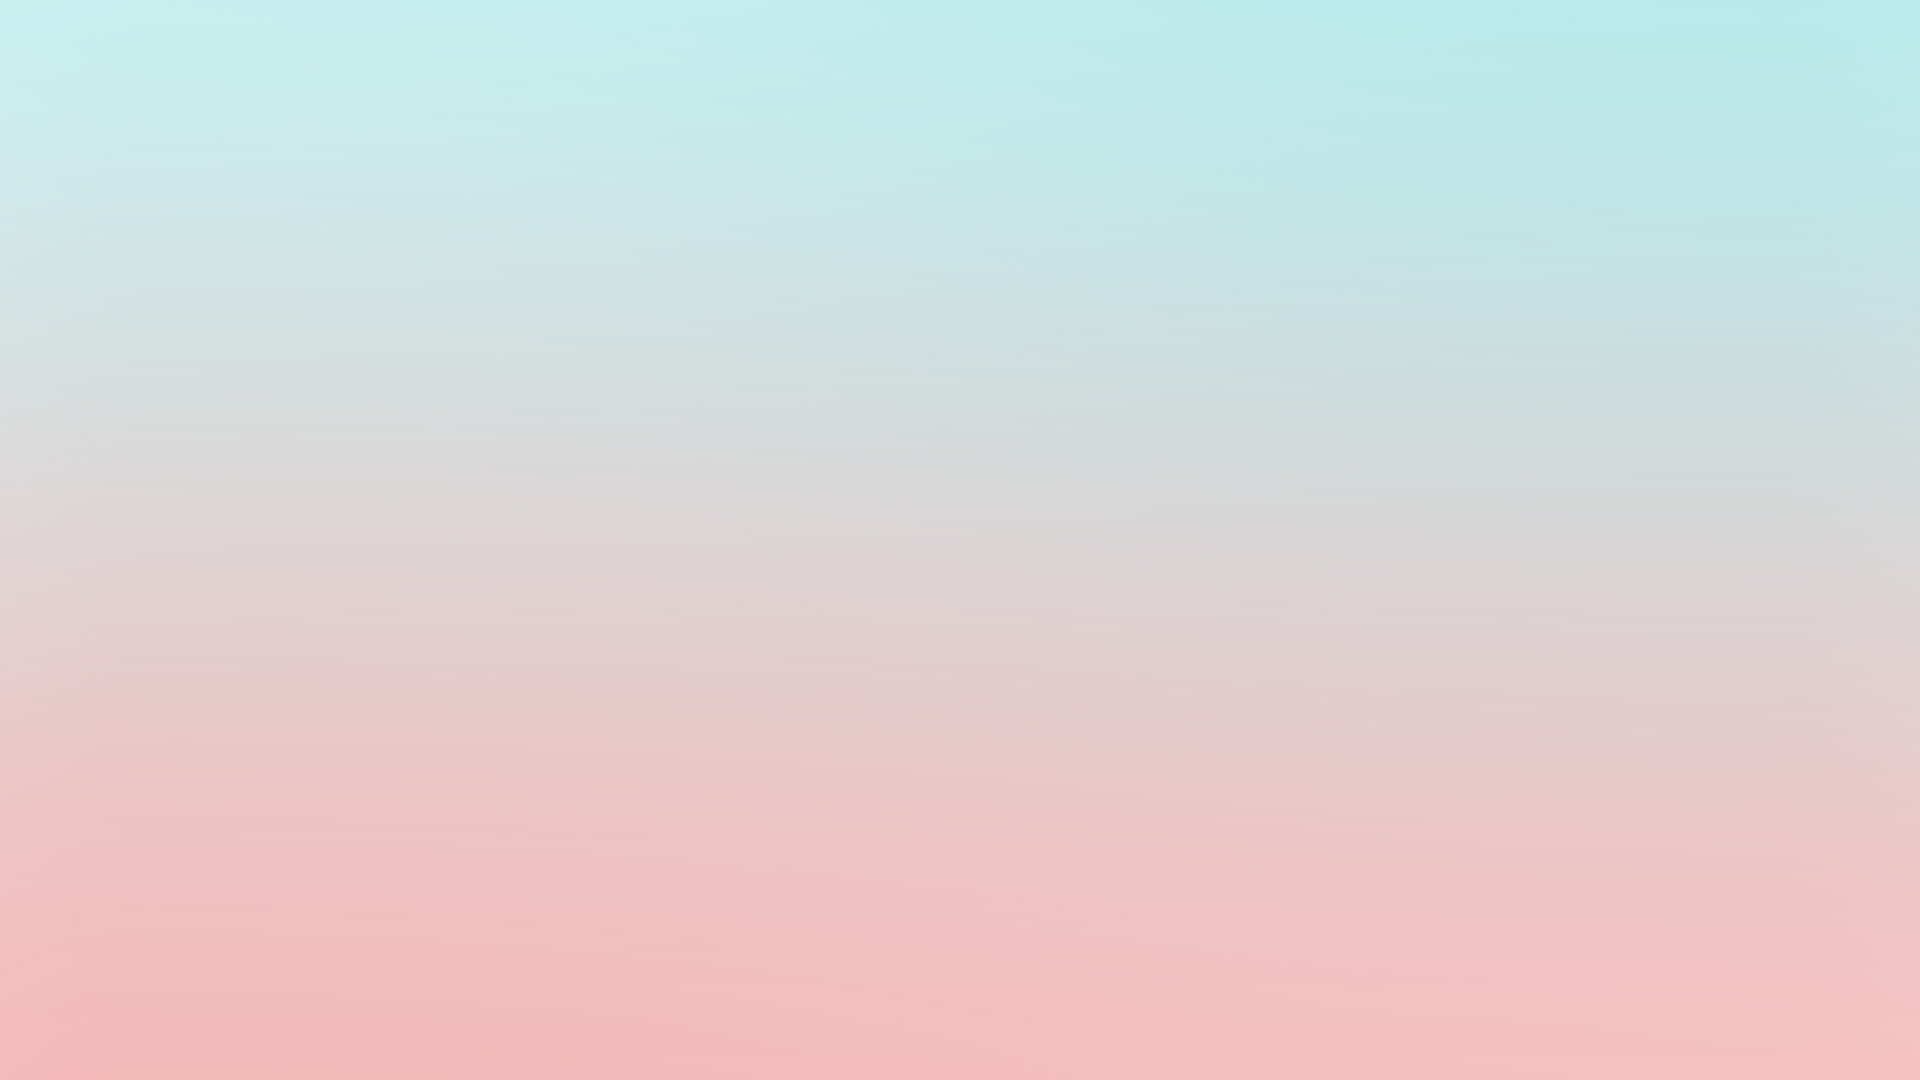 Pink Fall Desktop Wallpaper Sm40 Blue Red Soft Pastel Blur Gradation Wallpaper